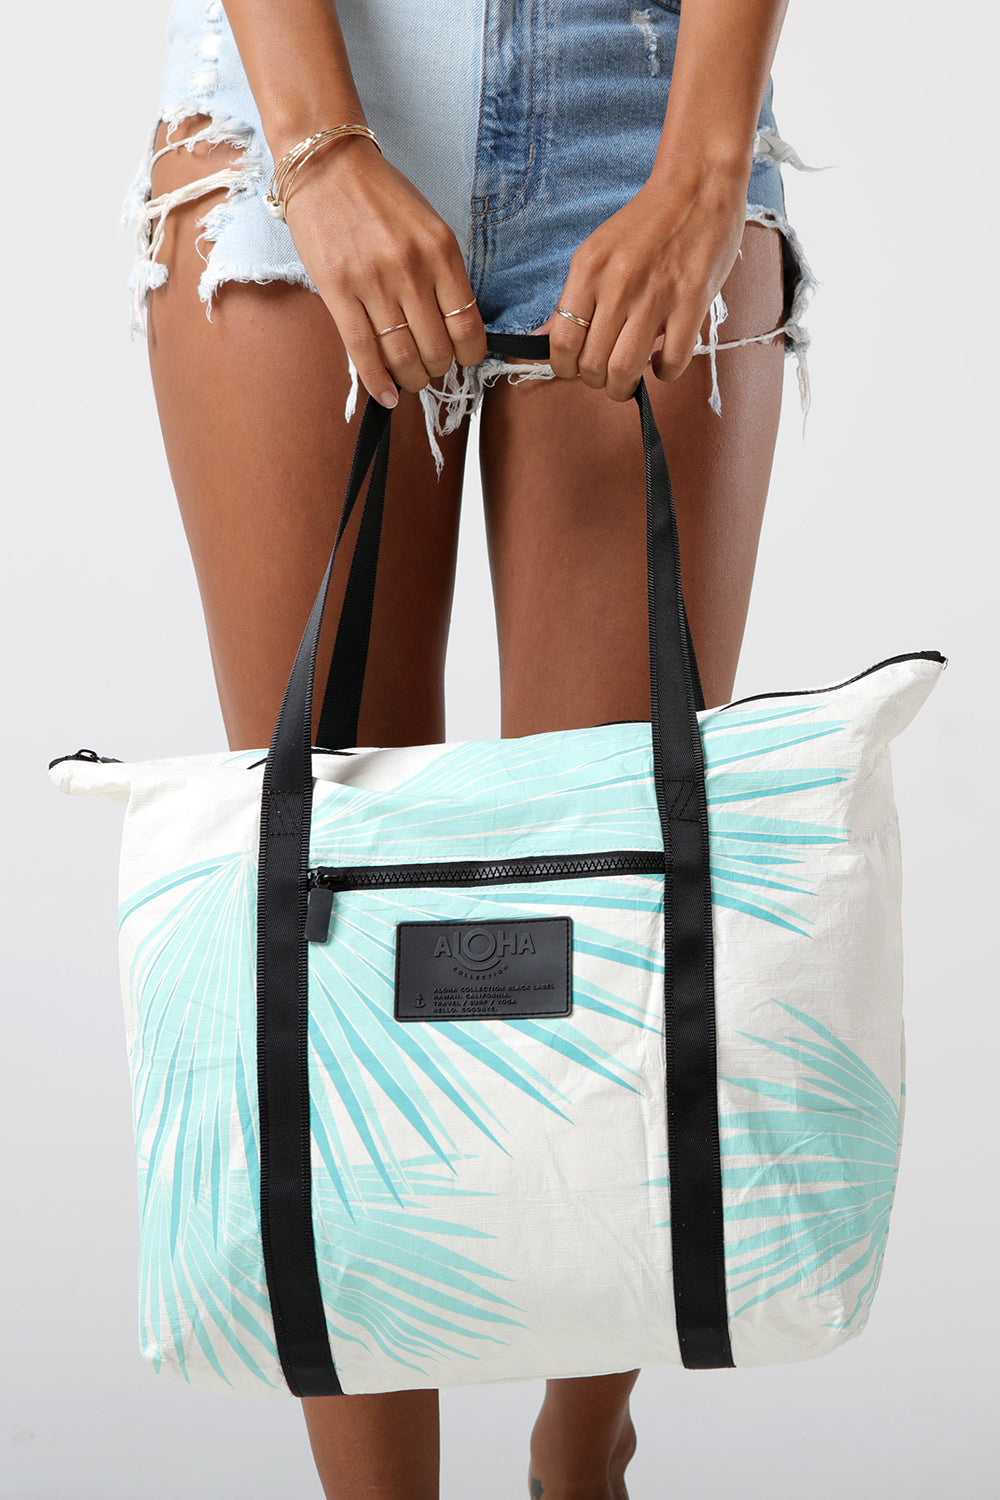 ALOHA Collection Zipper Tote in Tropical Fan Palm